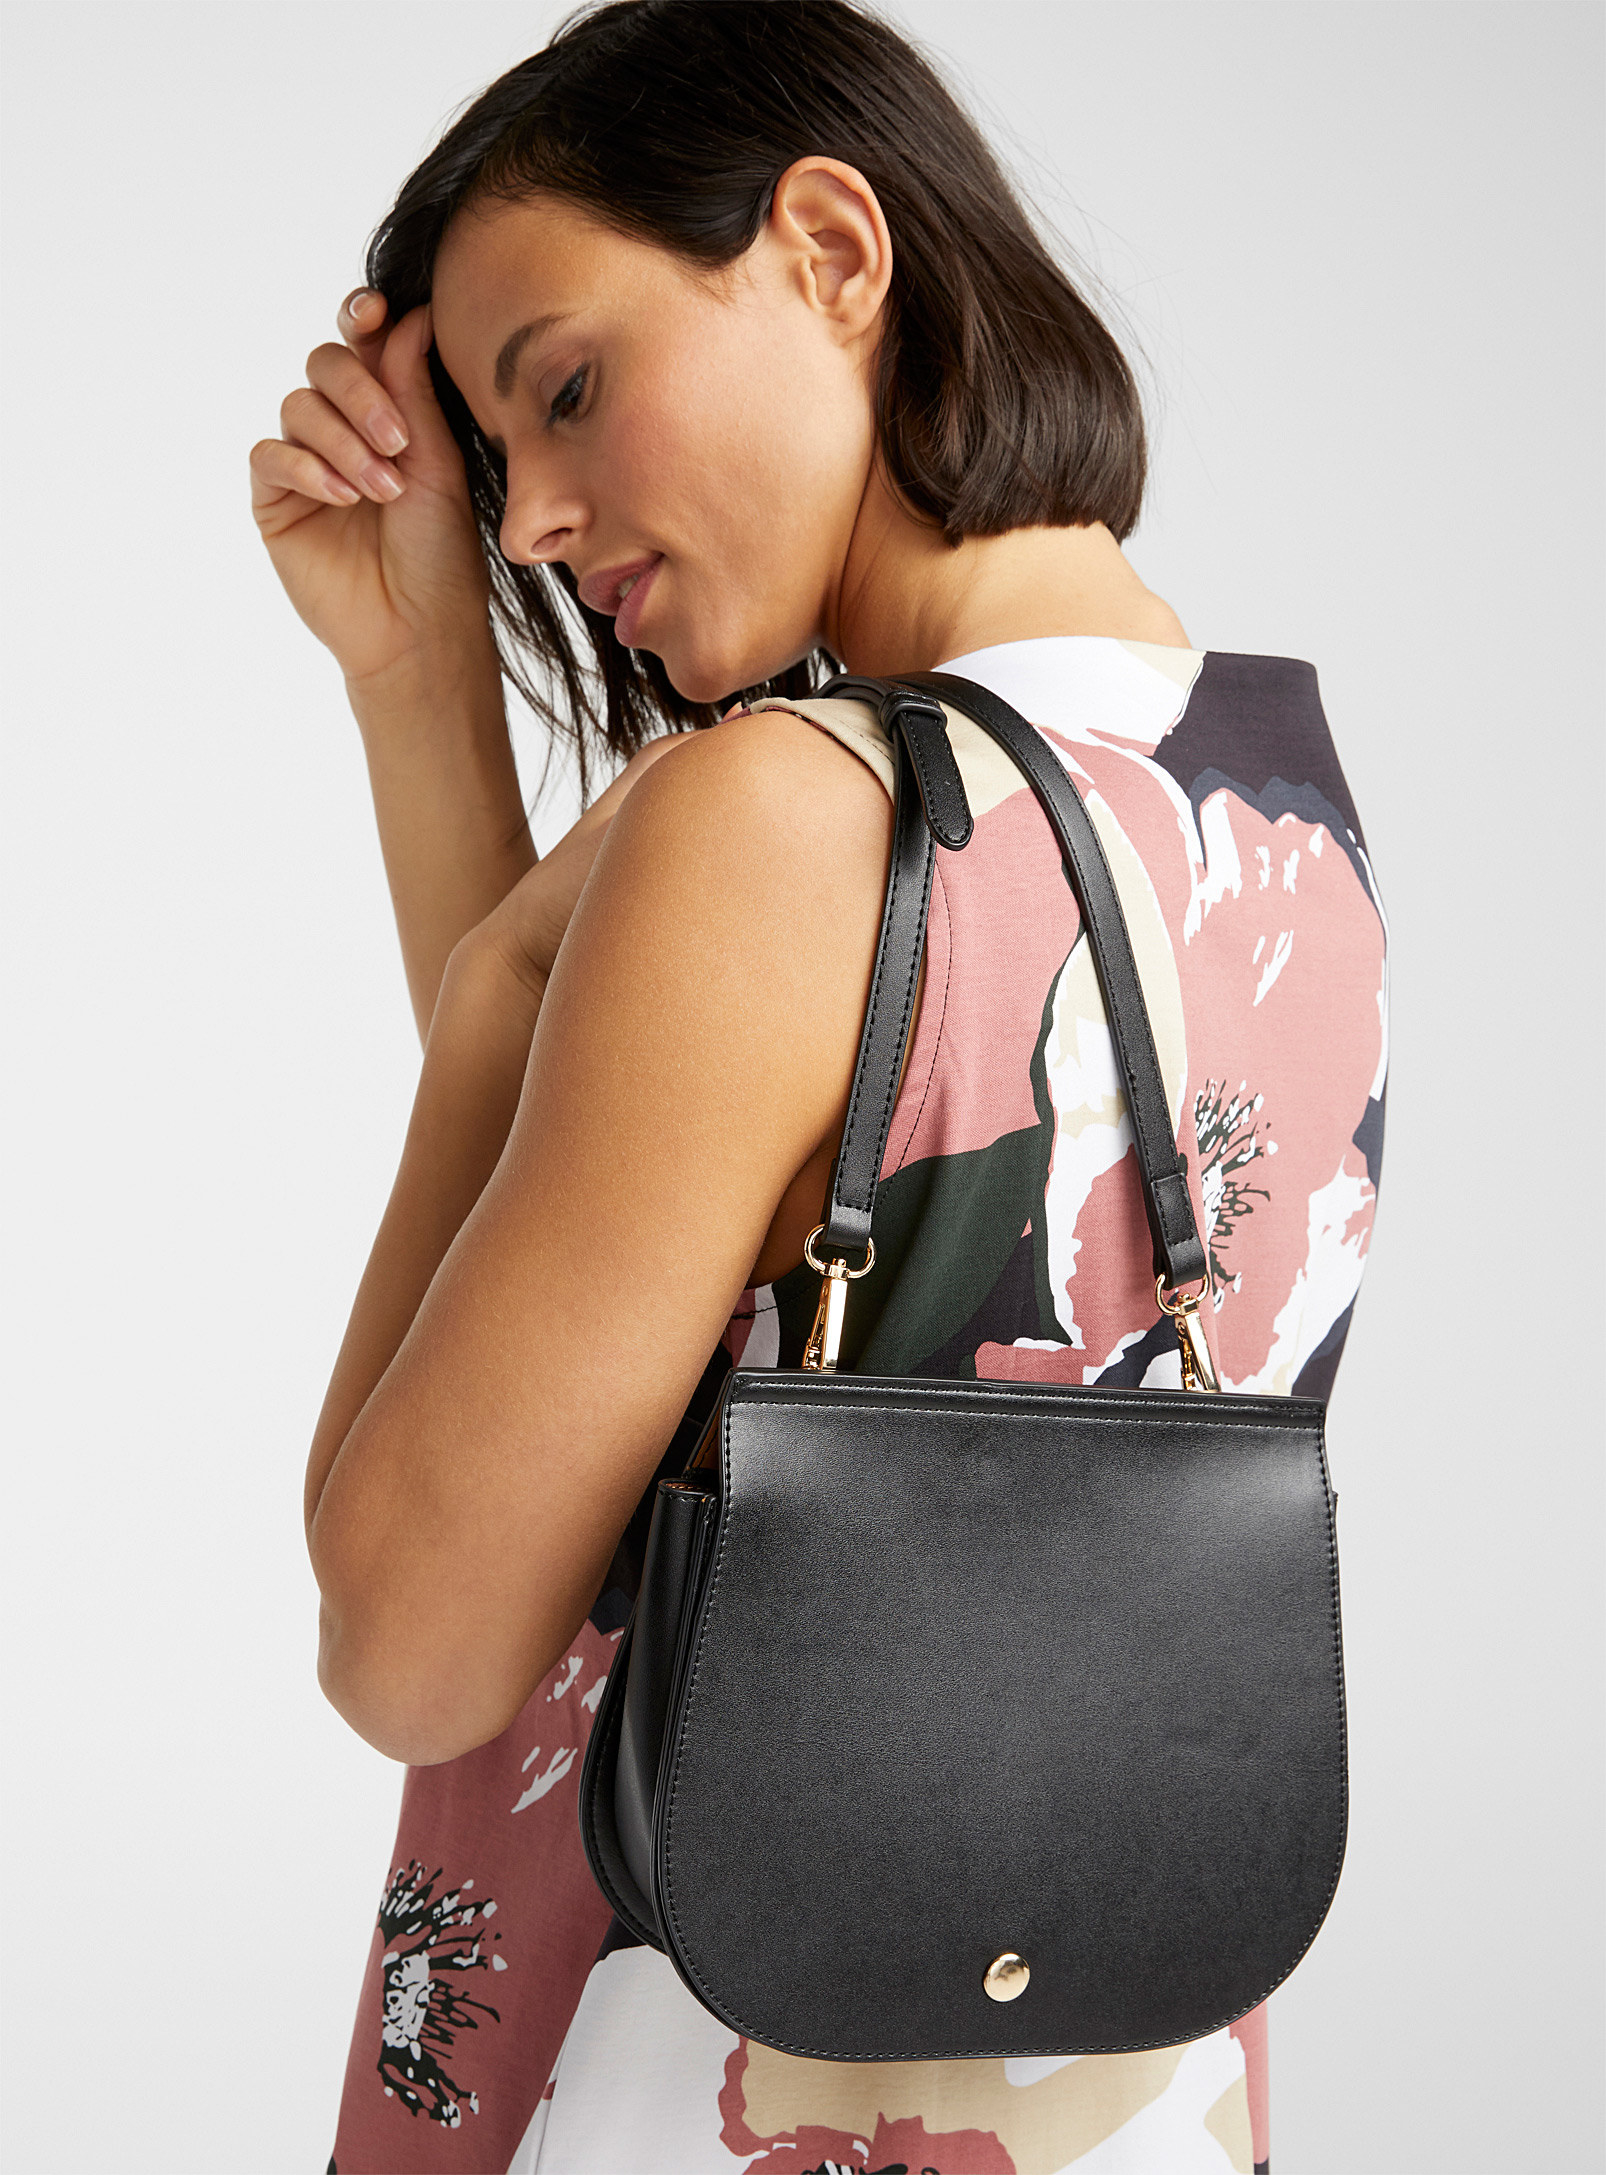 a person with the shoulder bag slung over their shoulders